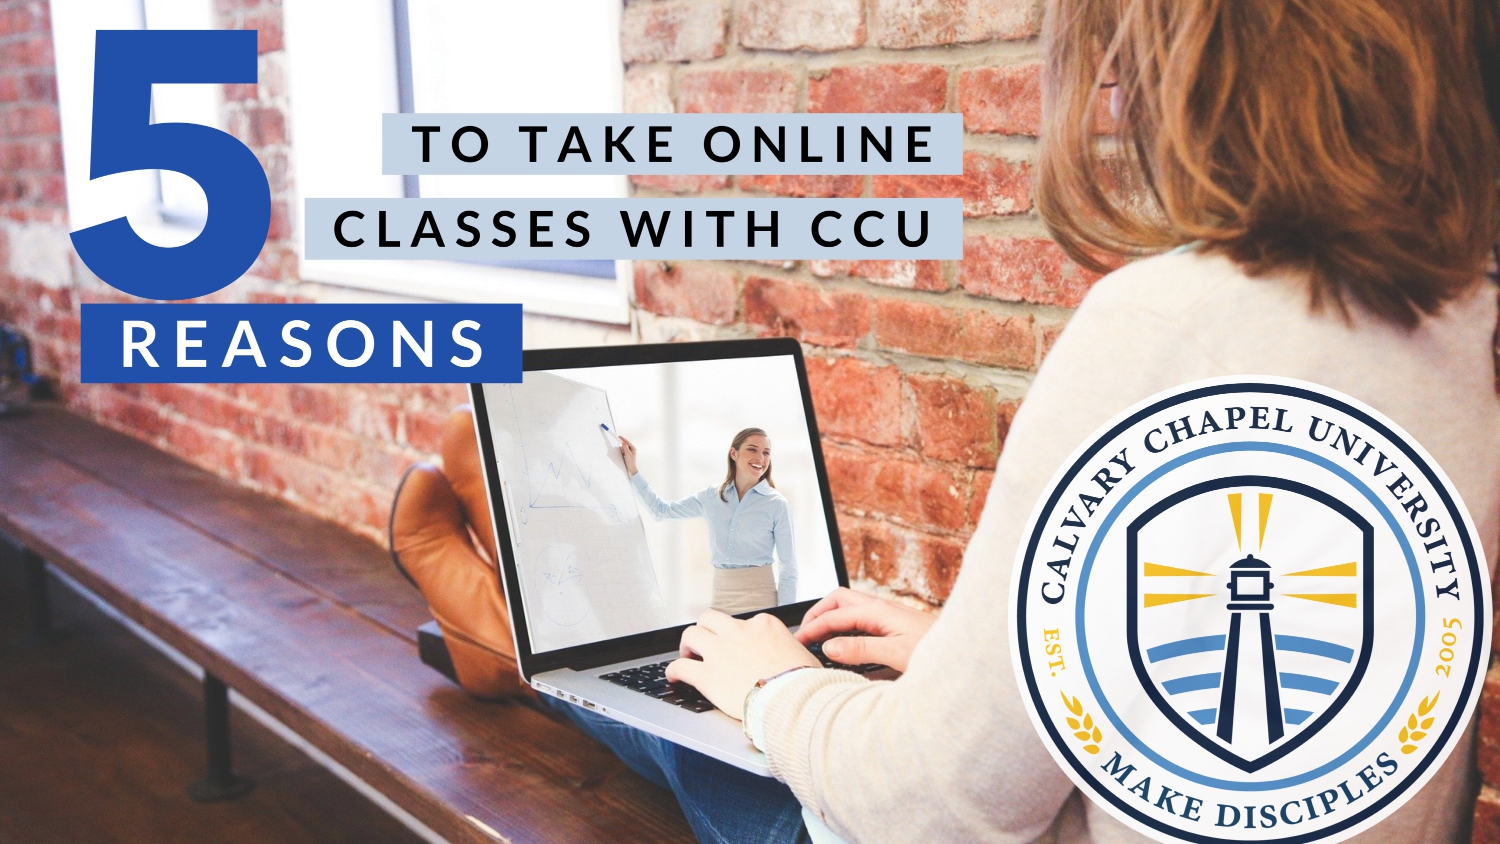 5 Reasons To Take Online Classes With CCU!